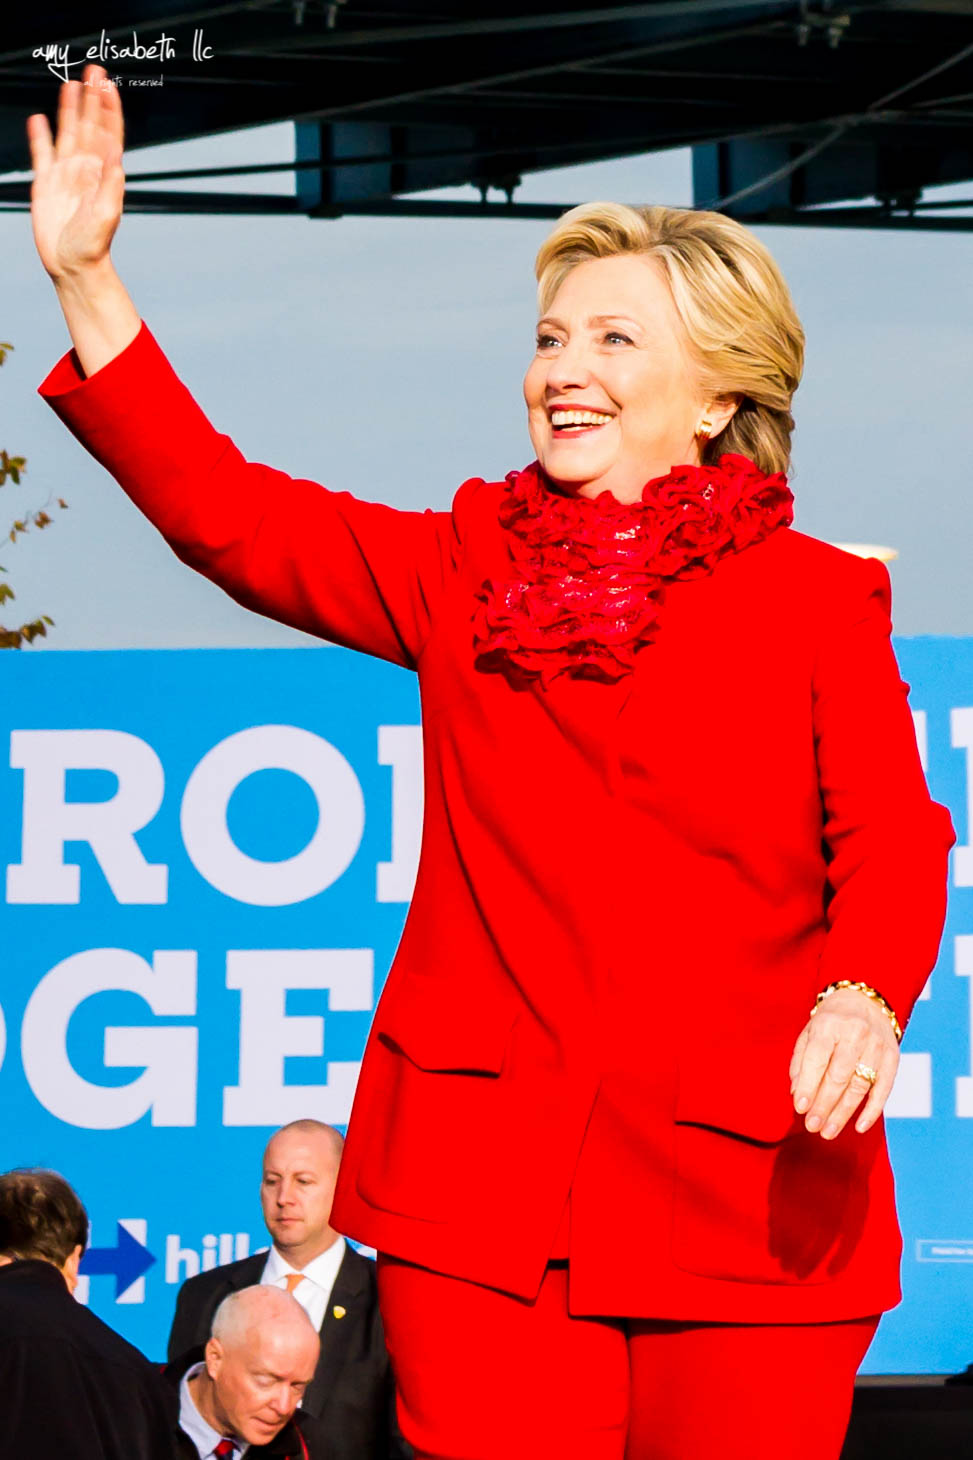 Hillary Clinton, Democratic Nominee for President / Image: Amy Elisabeth Spasoff / Published: 12.19.16